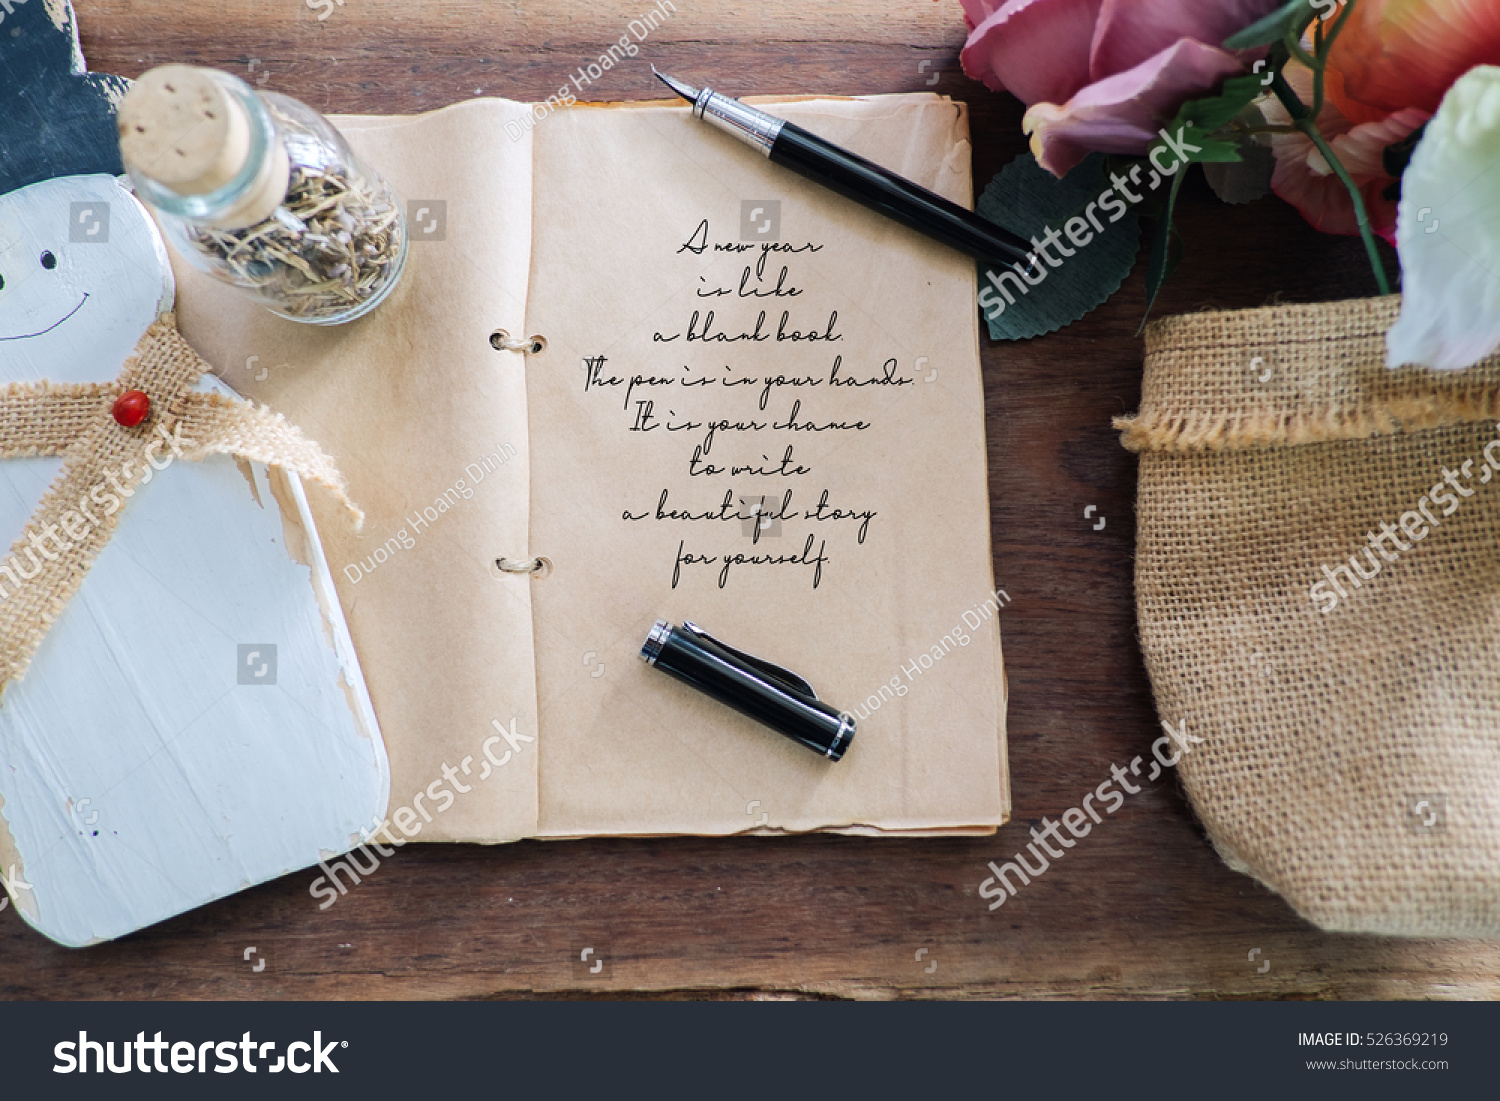 happy new year inspirational quotes with phrase a new year is like a blank book